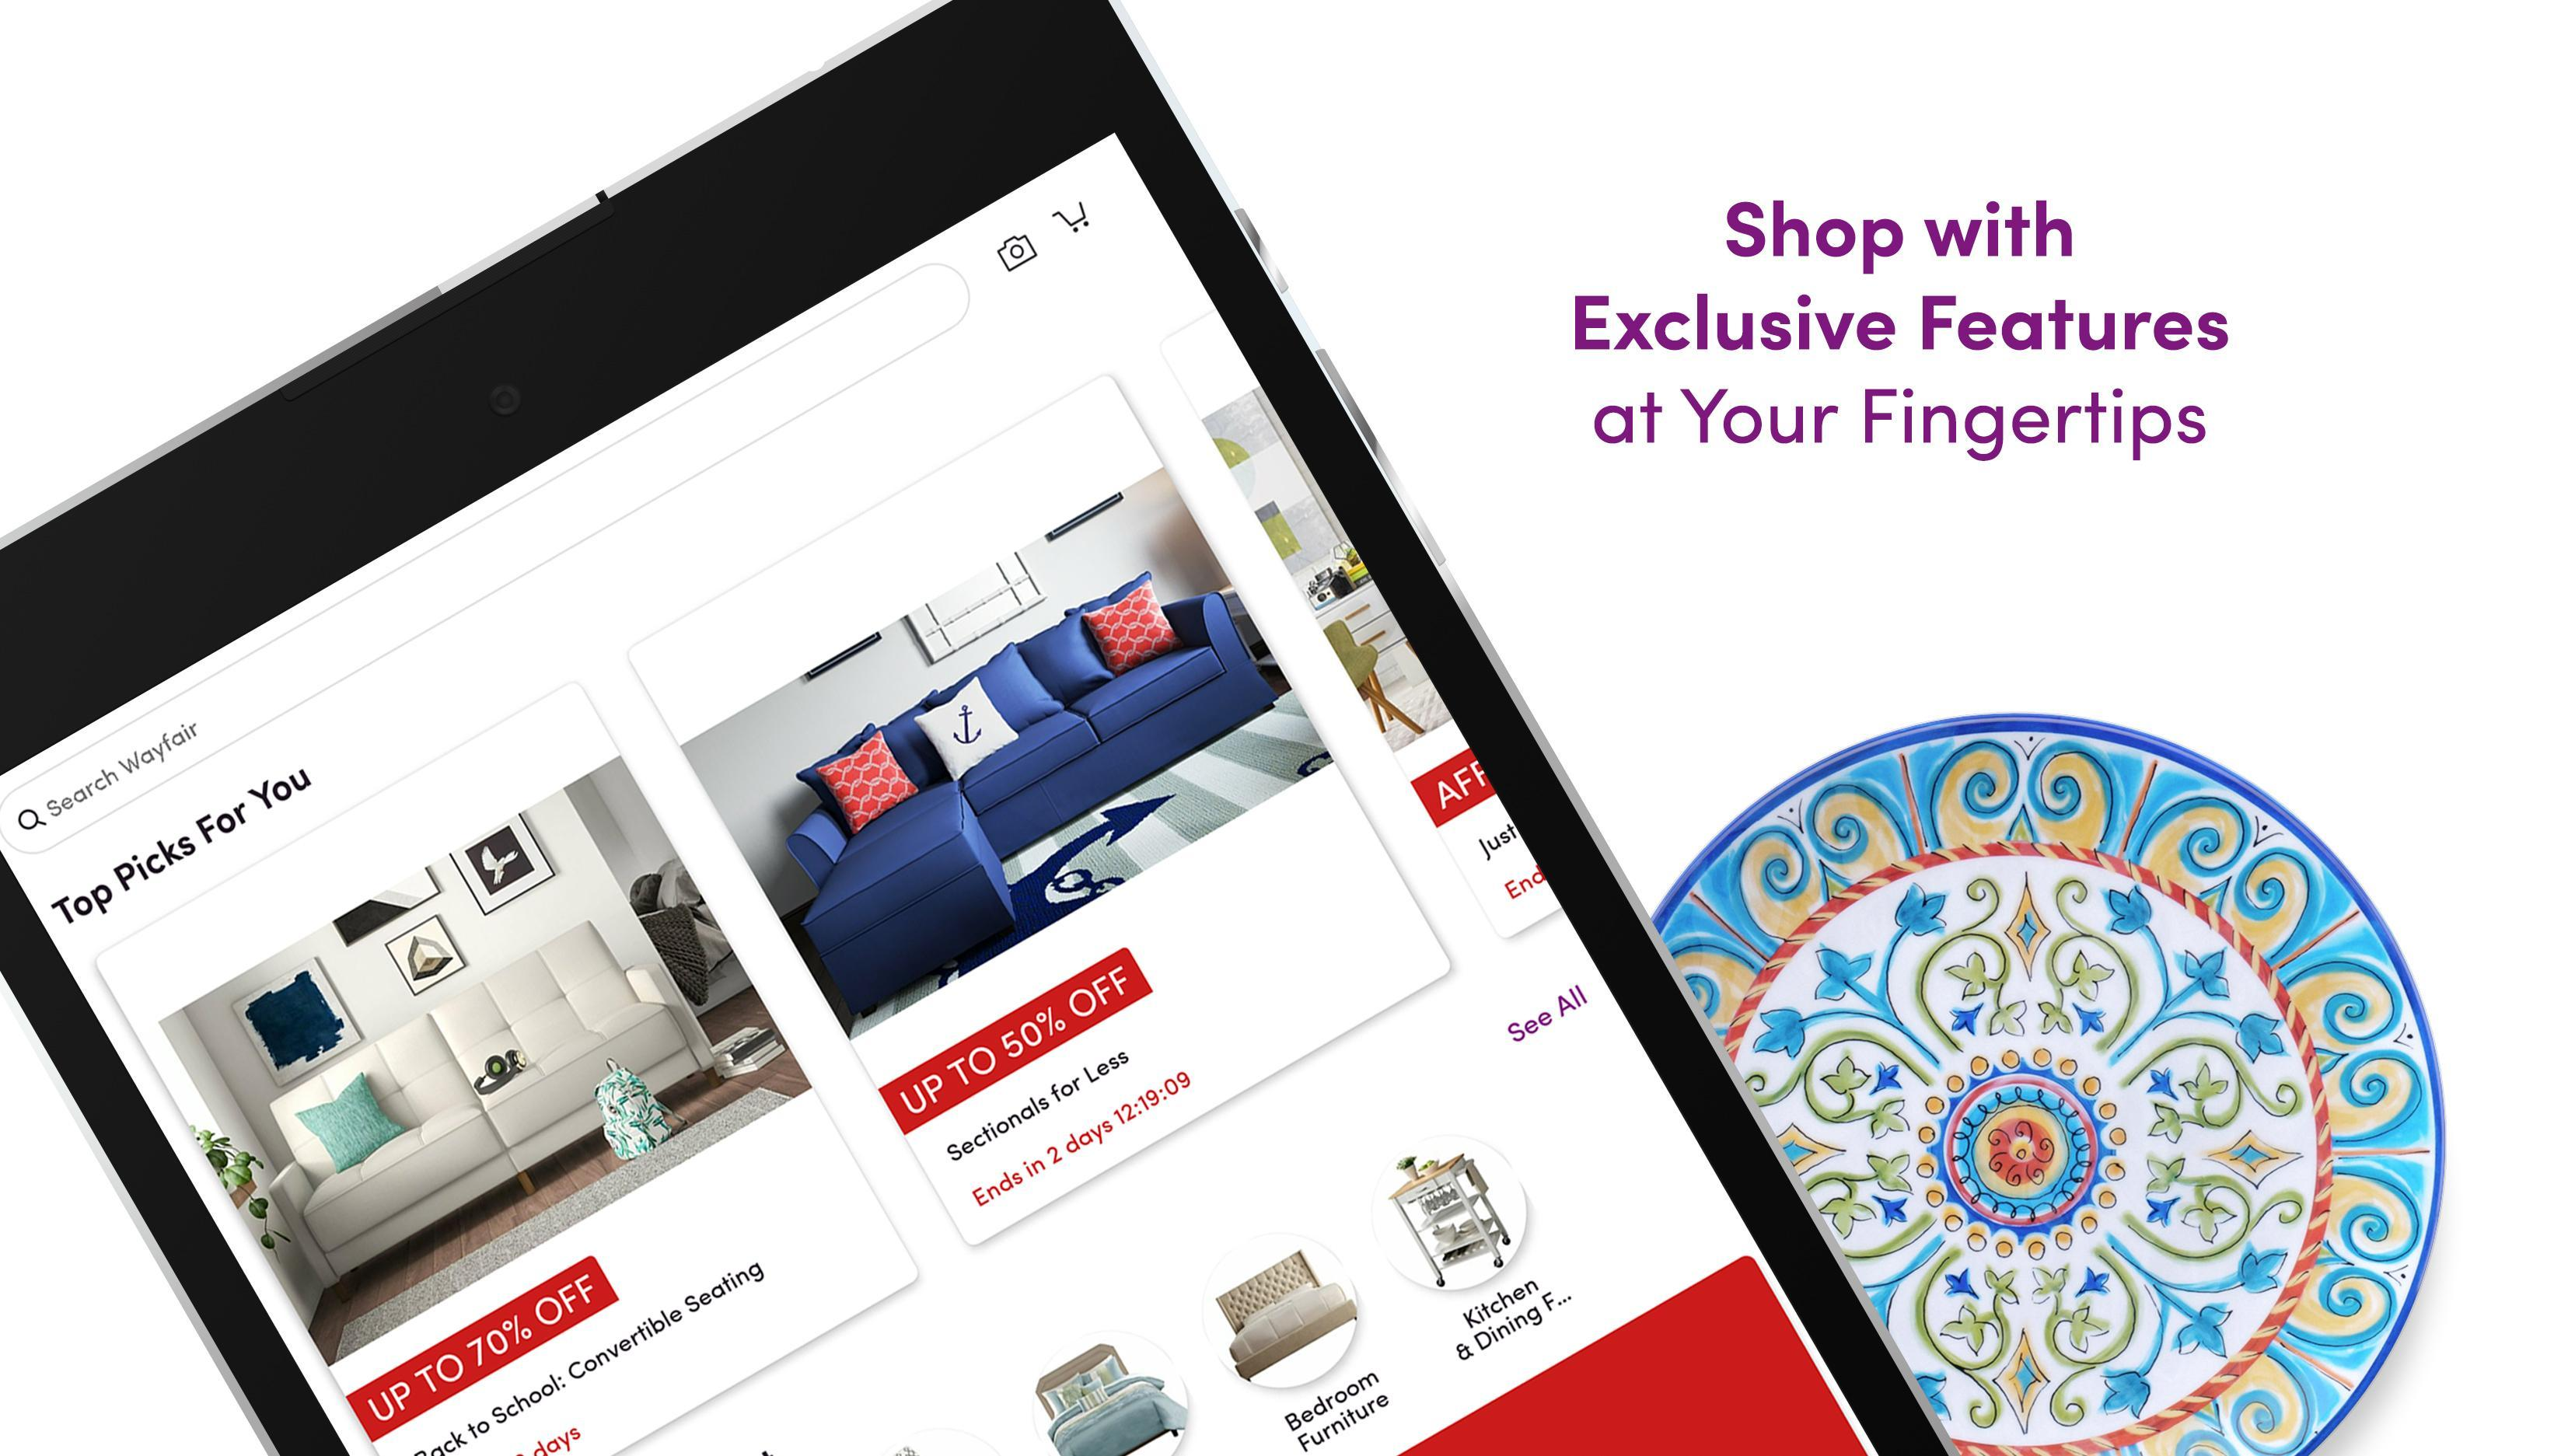 Wayfair Shop All Things Home 5.2.4 Screenshot 7